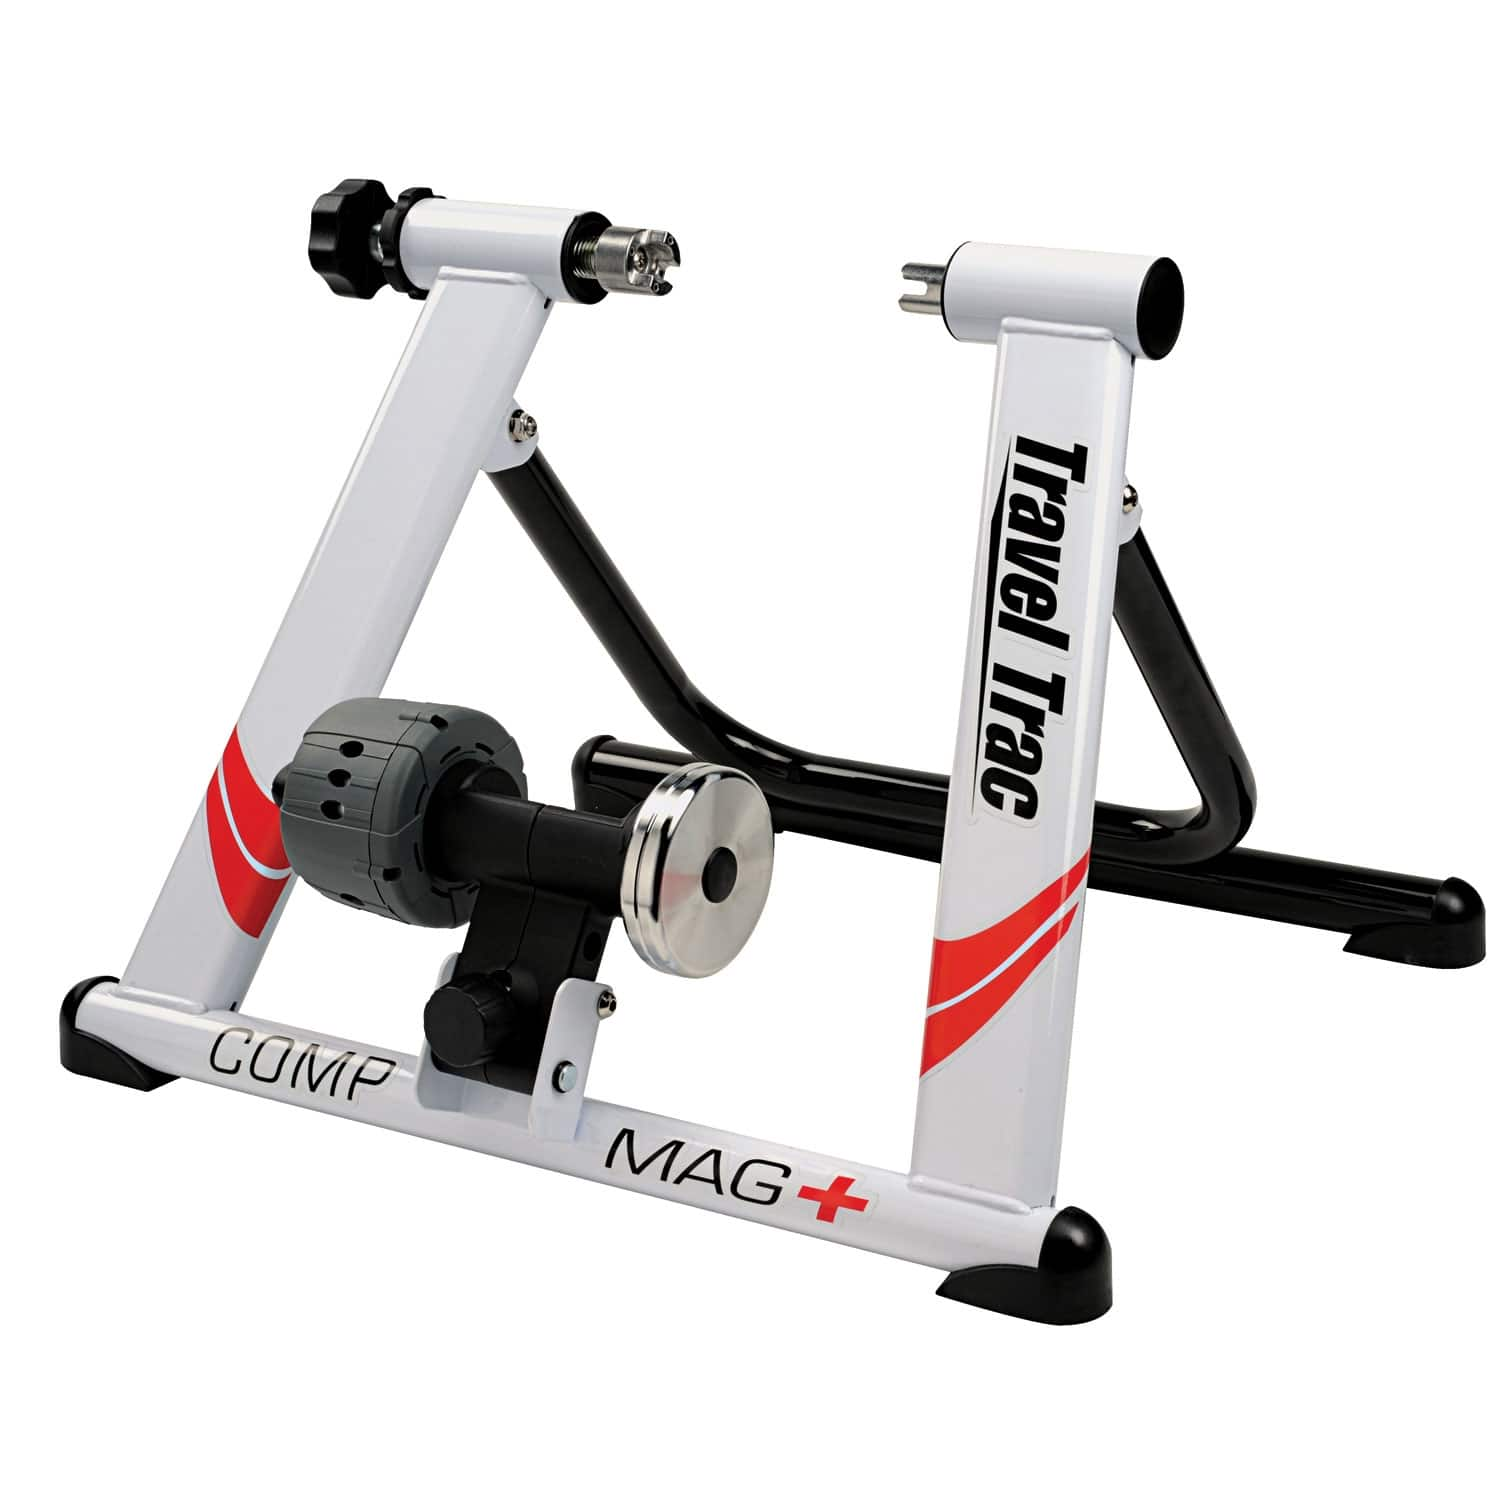 Travel Trac Comp Mag + Trainer $79.99 Free Shipping to Store